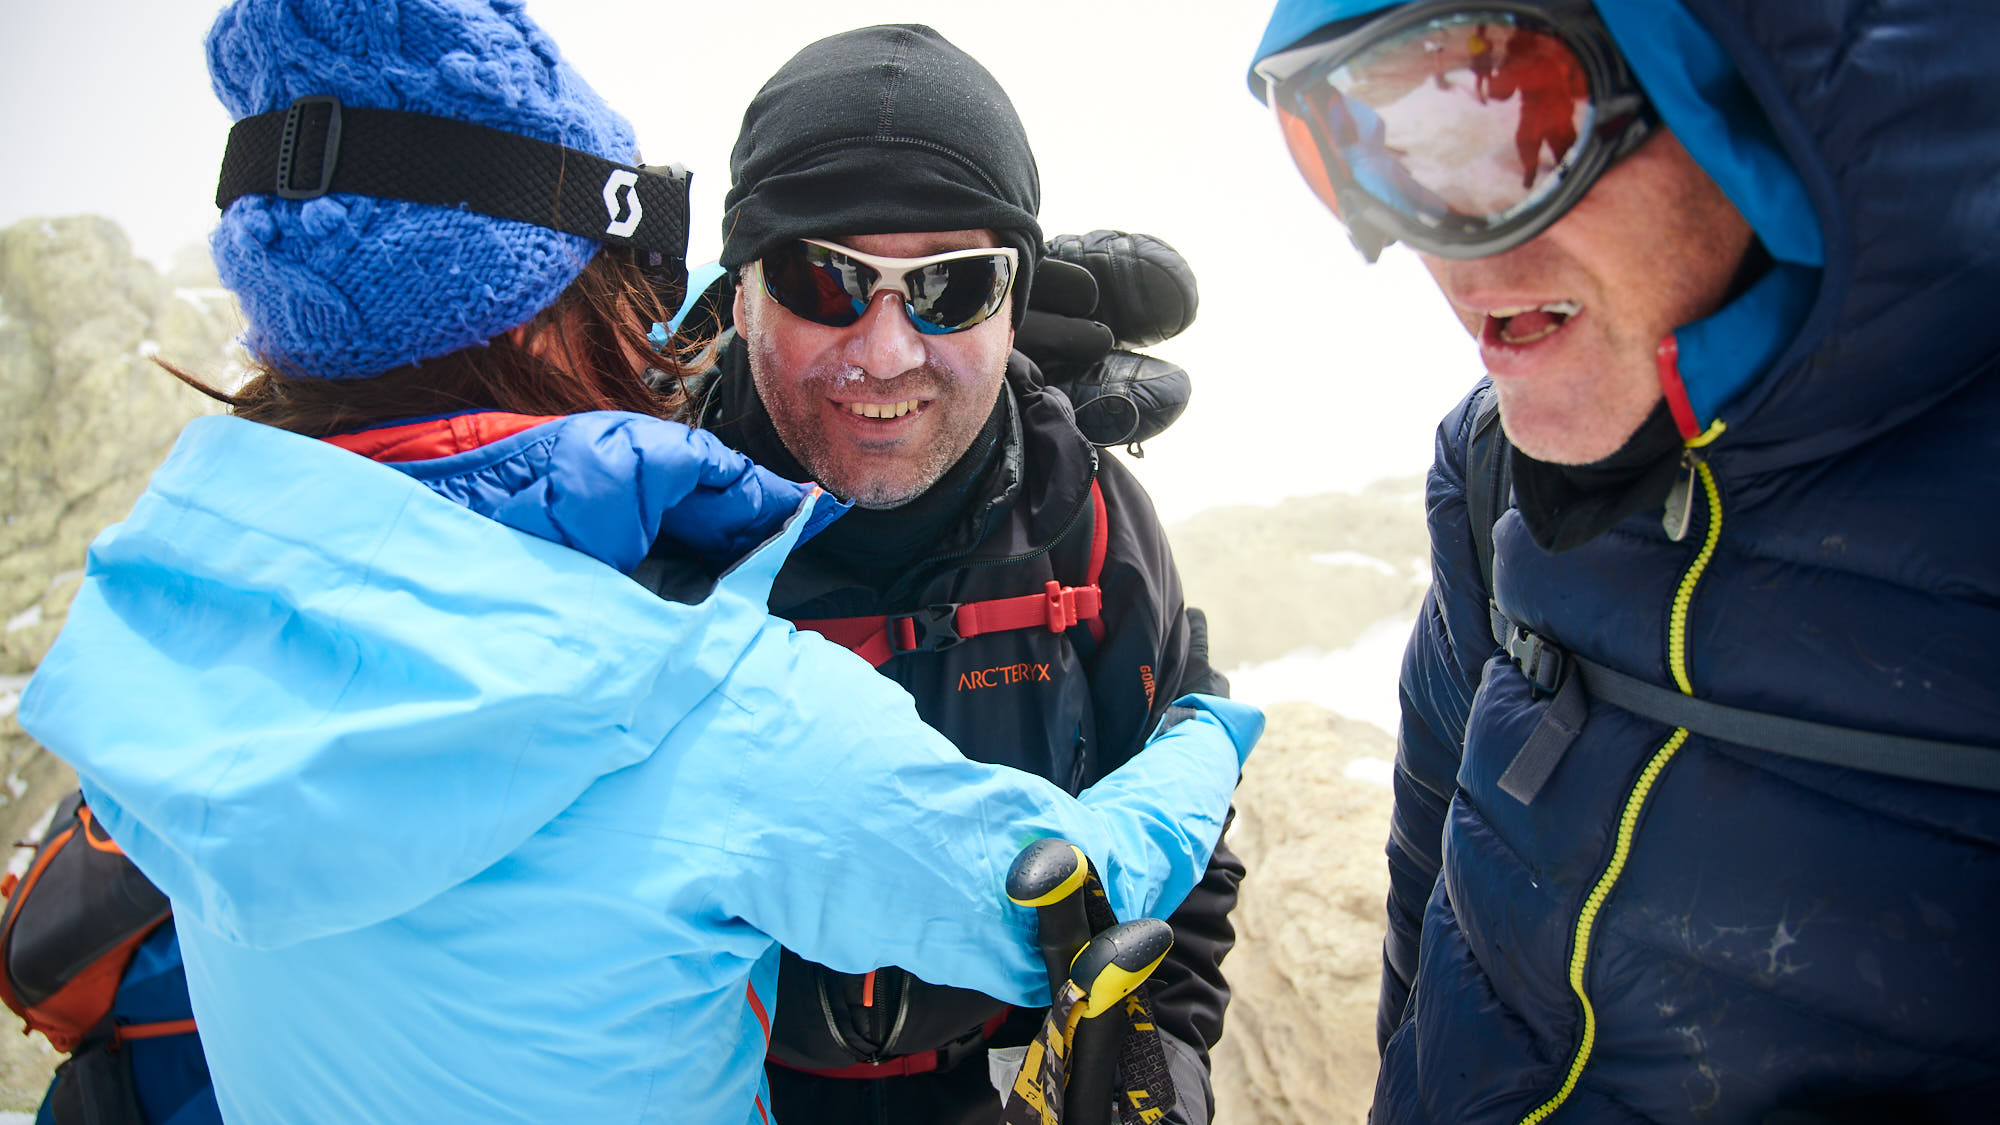 Mountaineer being welcomed on top of Mount Damavand in Iran